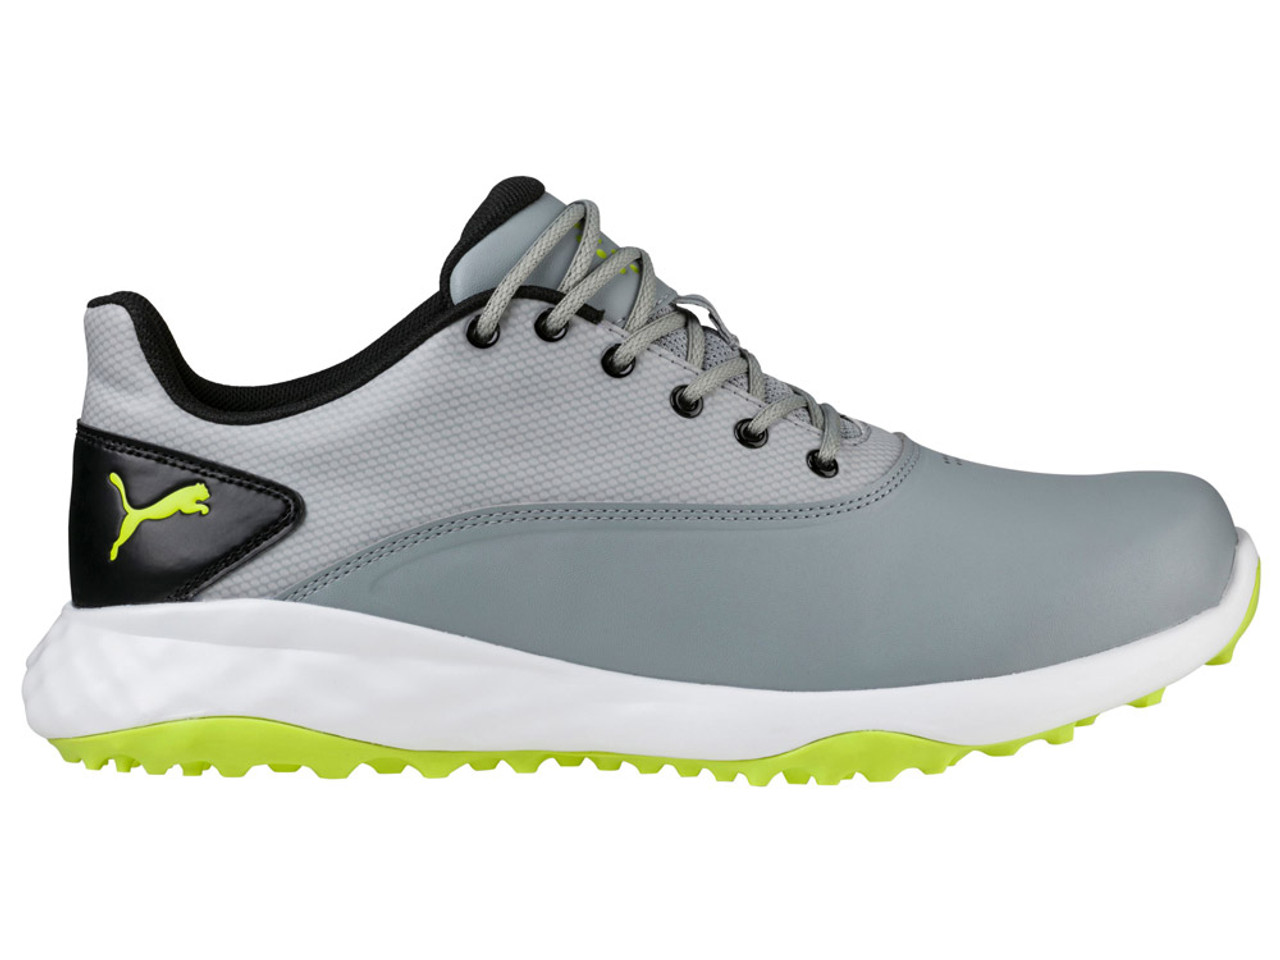 4b823c14bc12 Puma Grip Fusion Shoes - Quarry Acid Lime Black - Mens For Sale ...